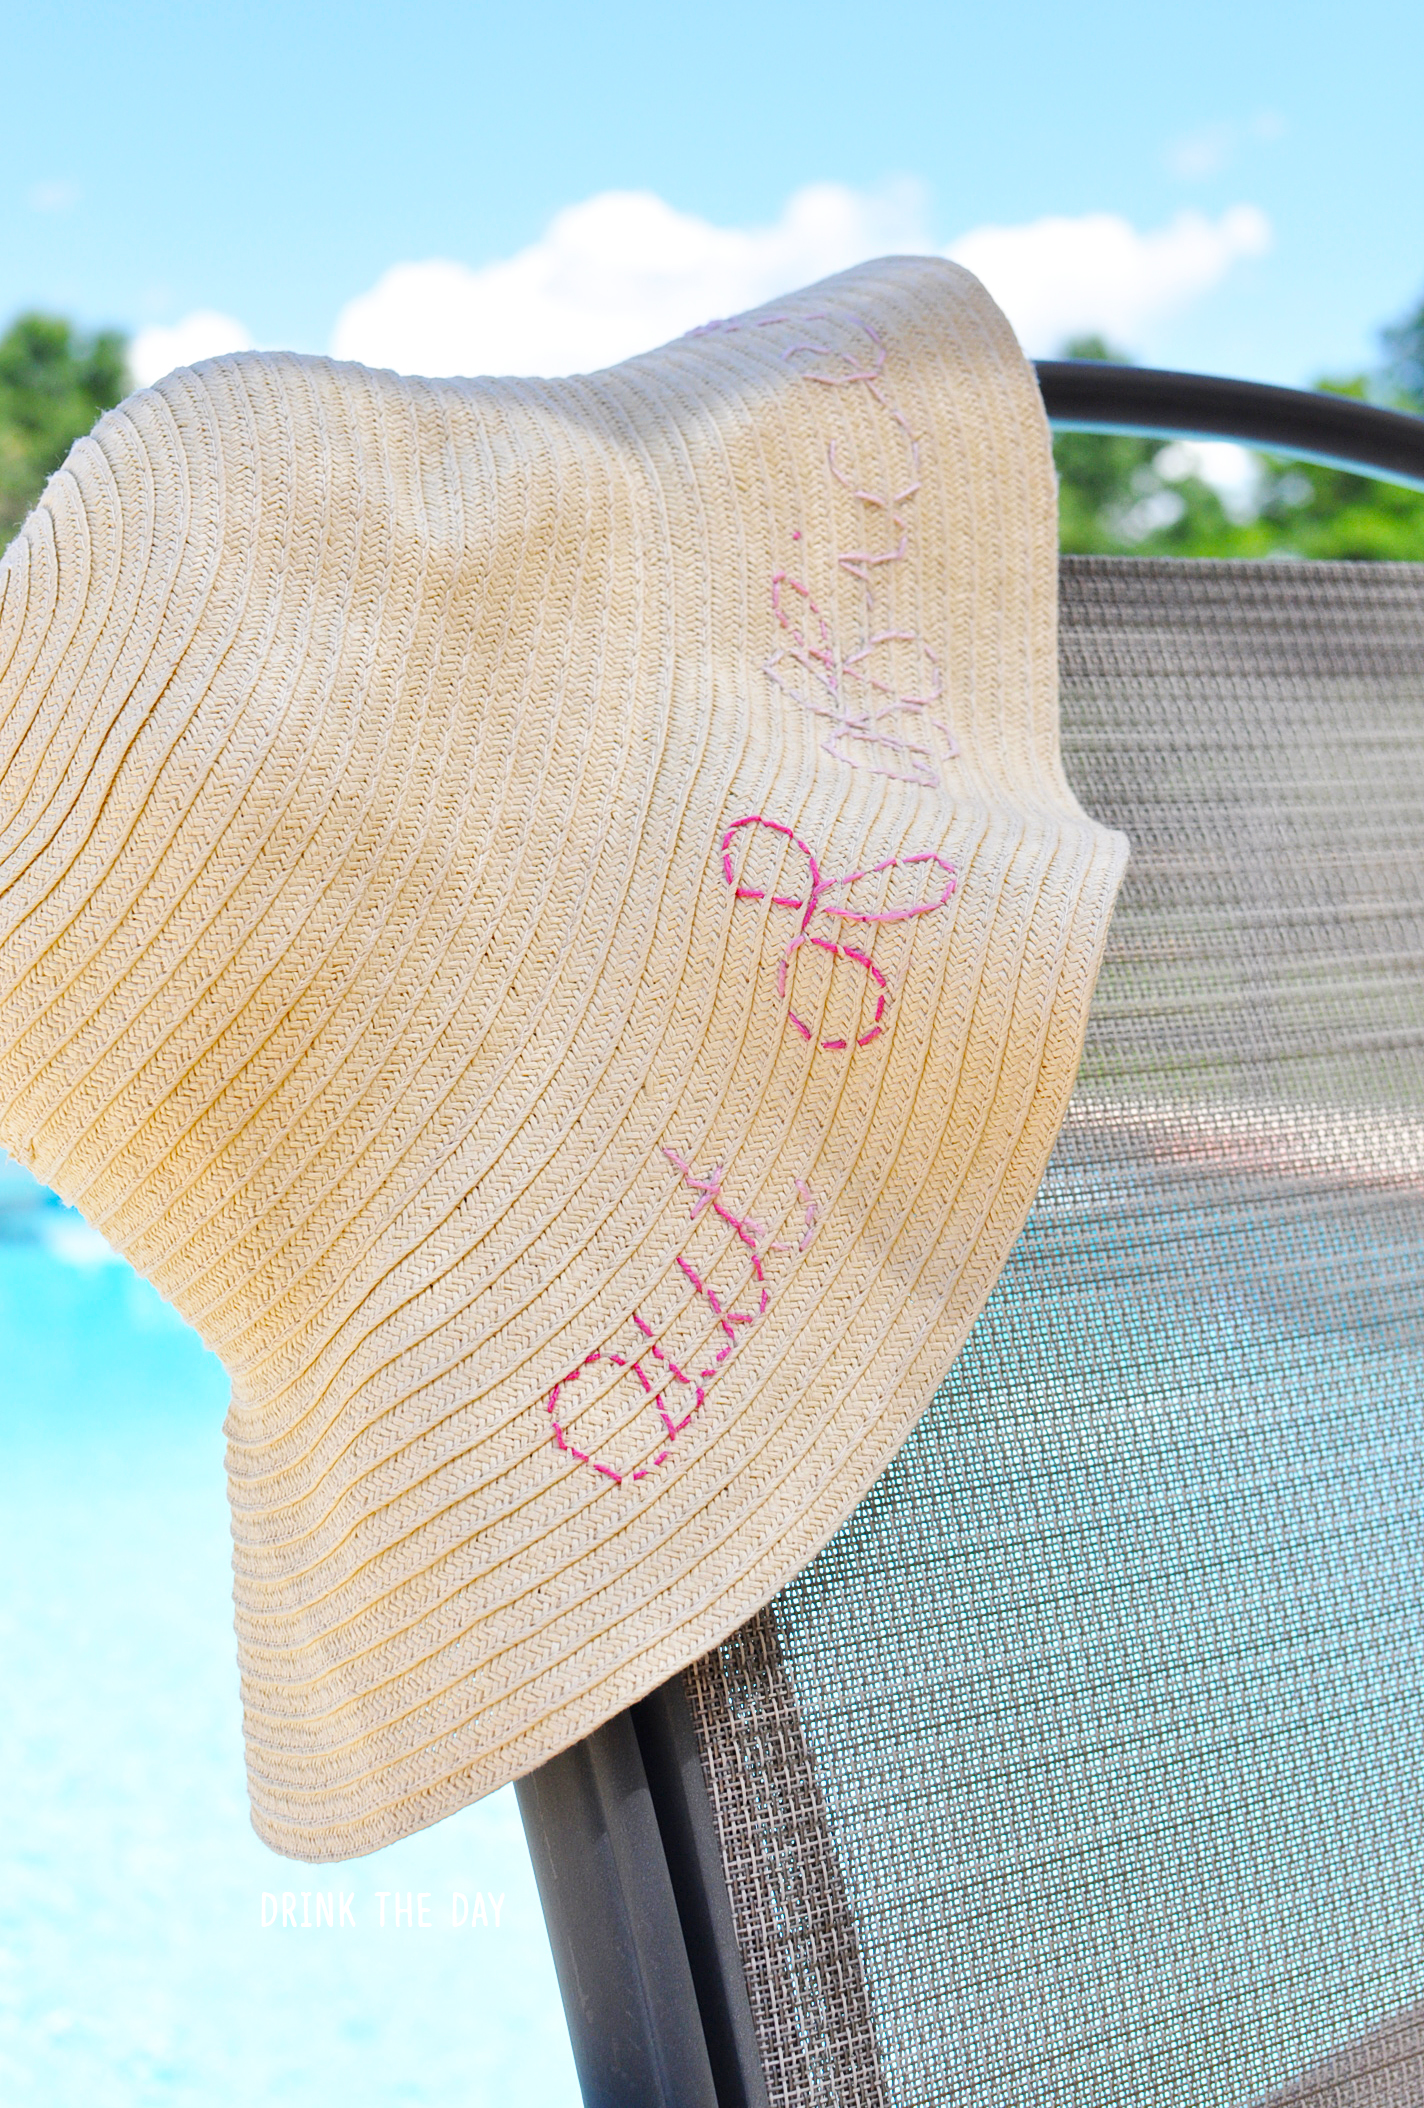 DIY Ombre Embroidered Beach Hat | Drink the Day